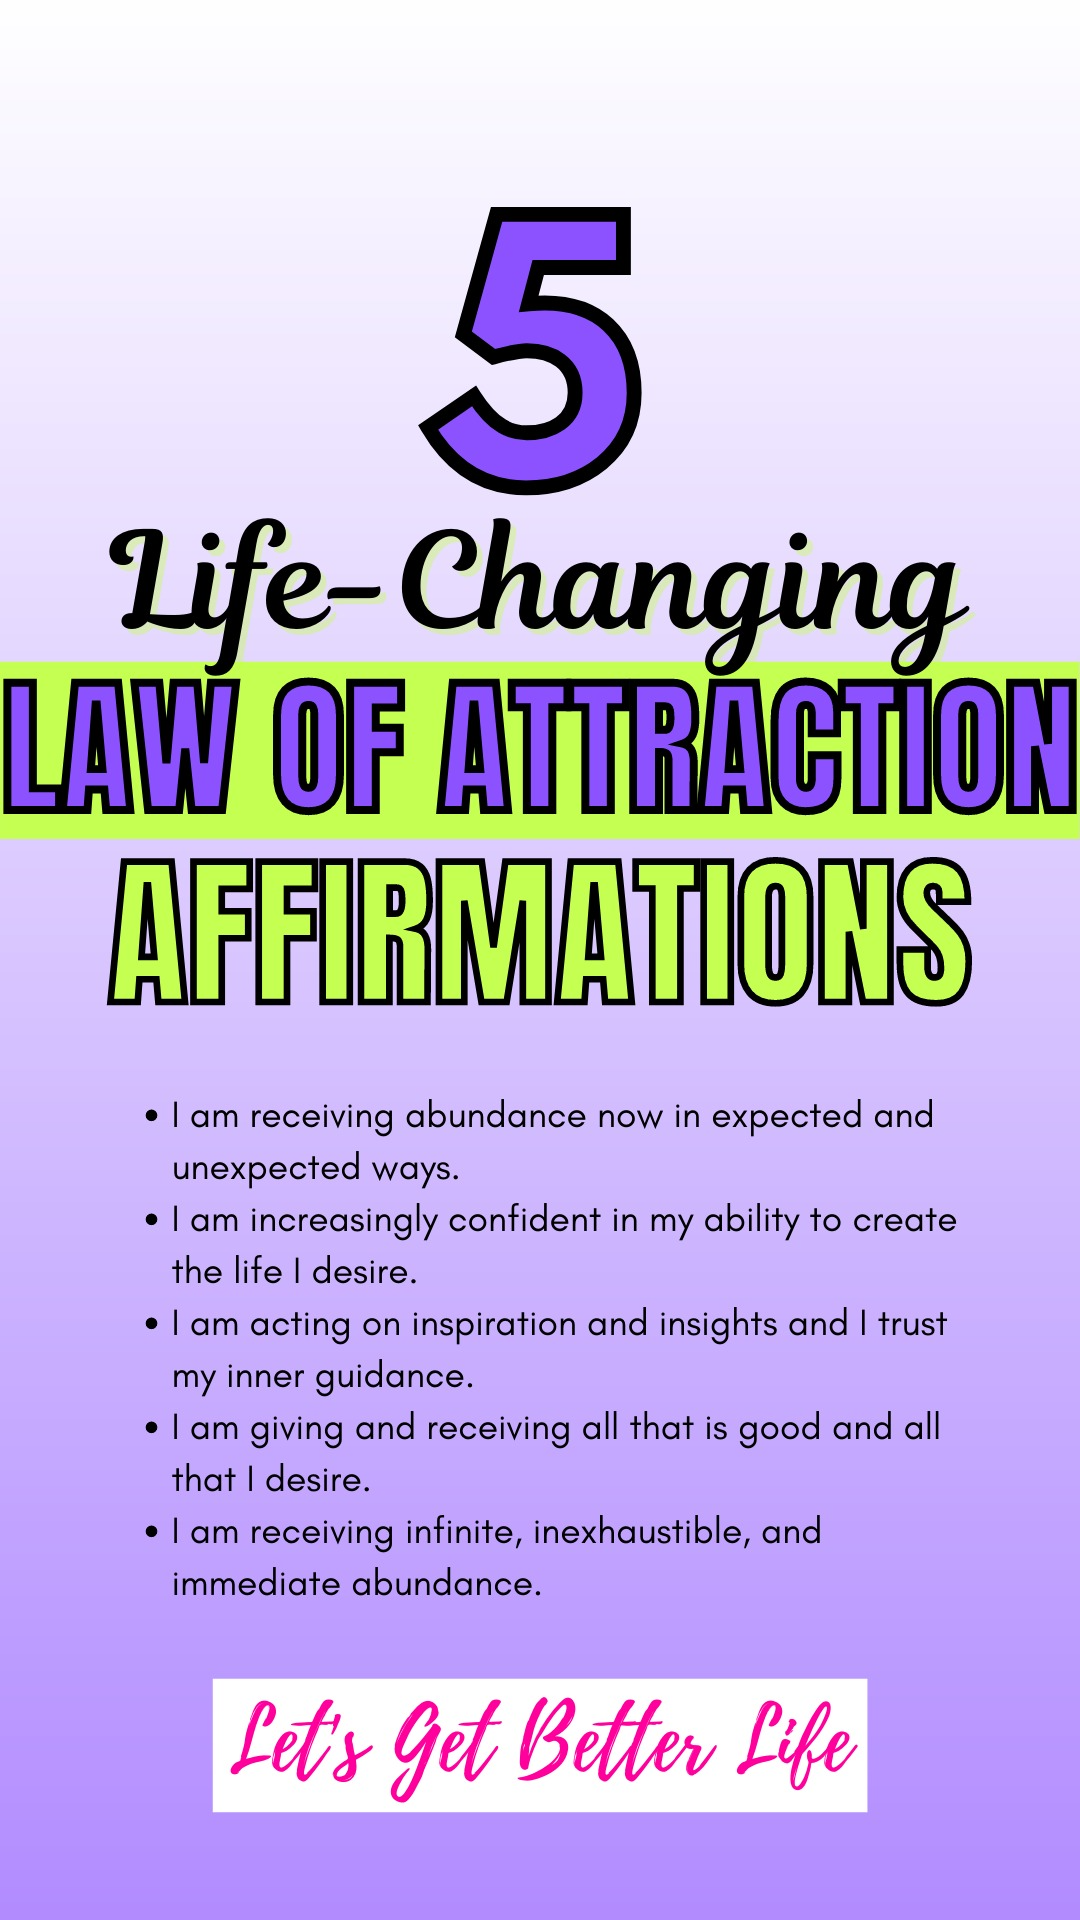 5 Life-Changing Law of Attraction Affirmations